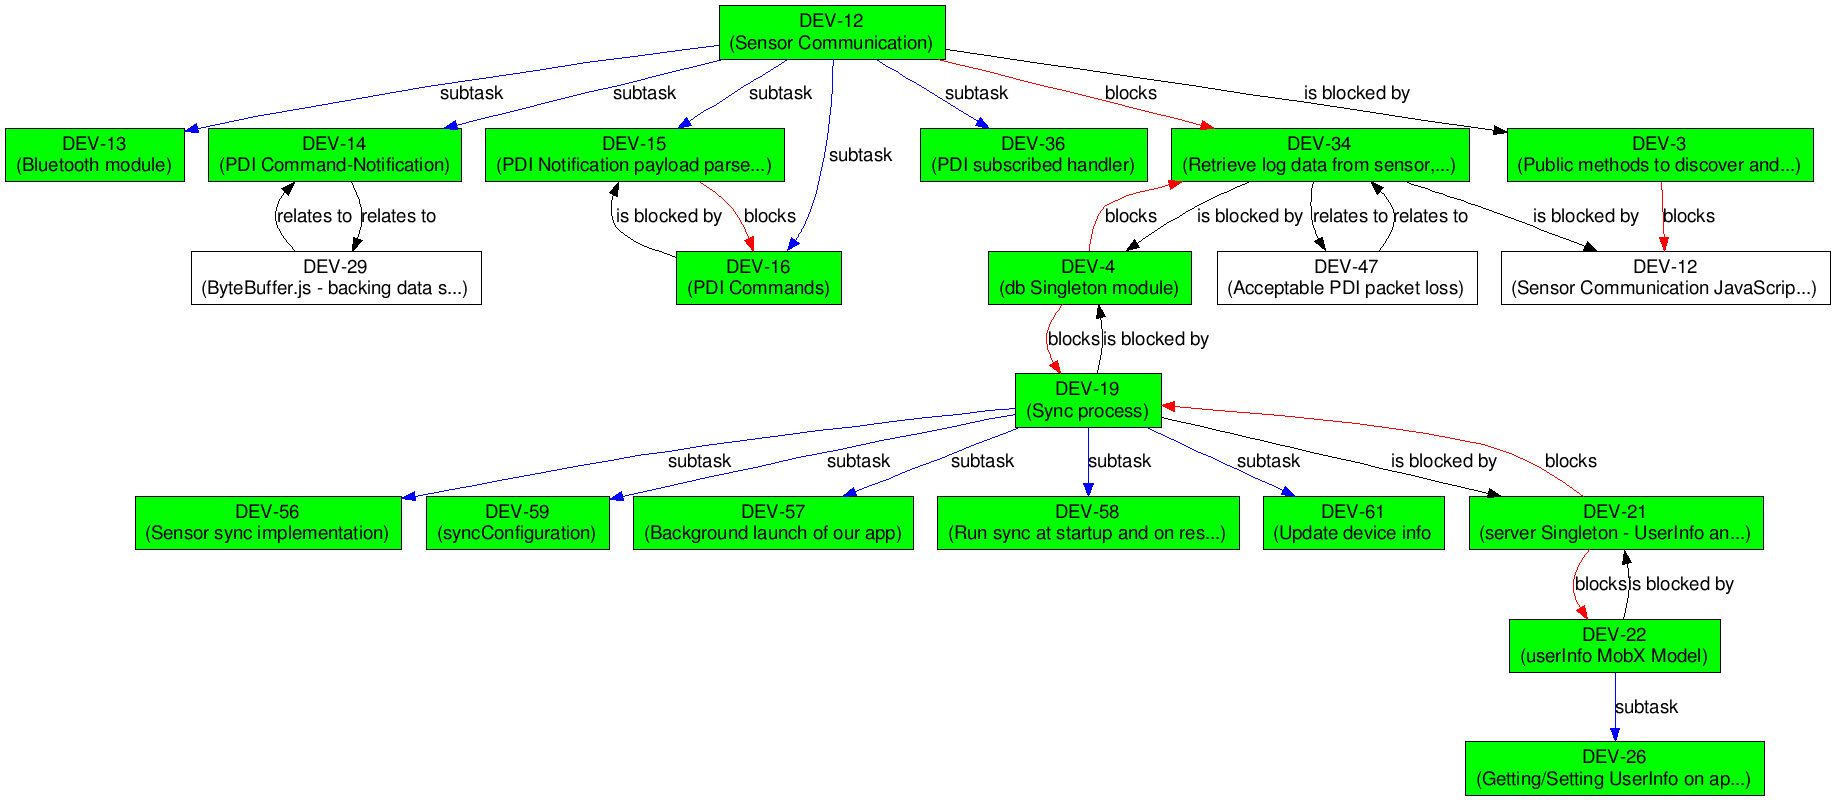 jira-dependency-graph by pawelrychlik